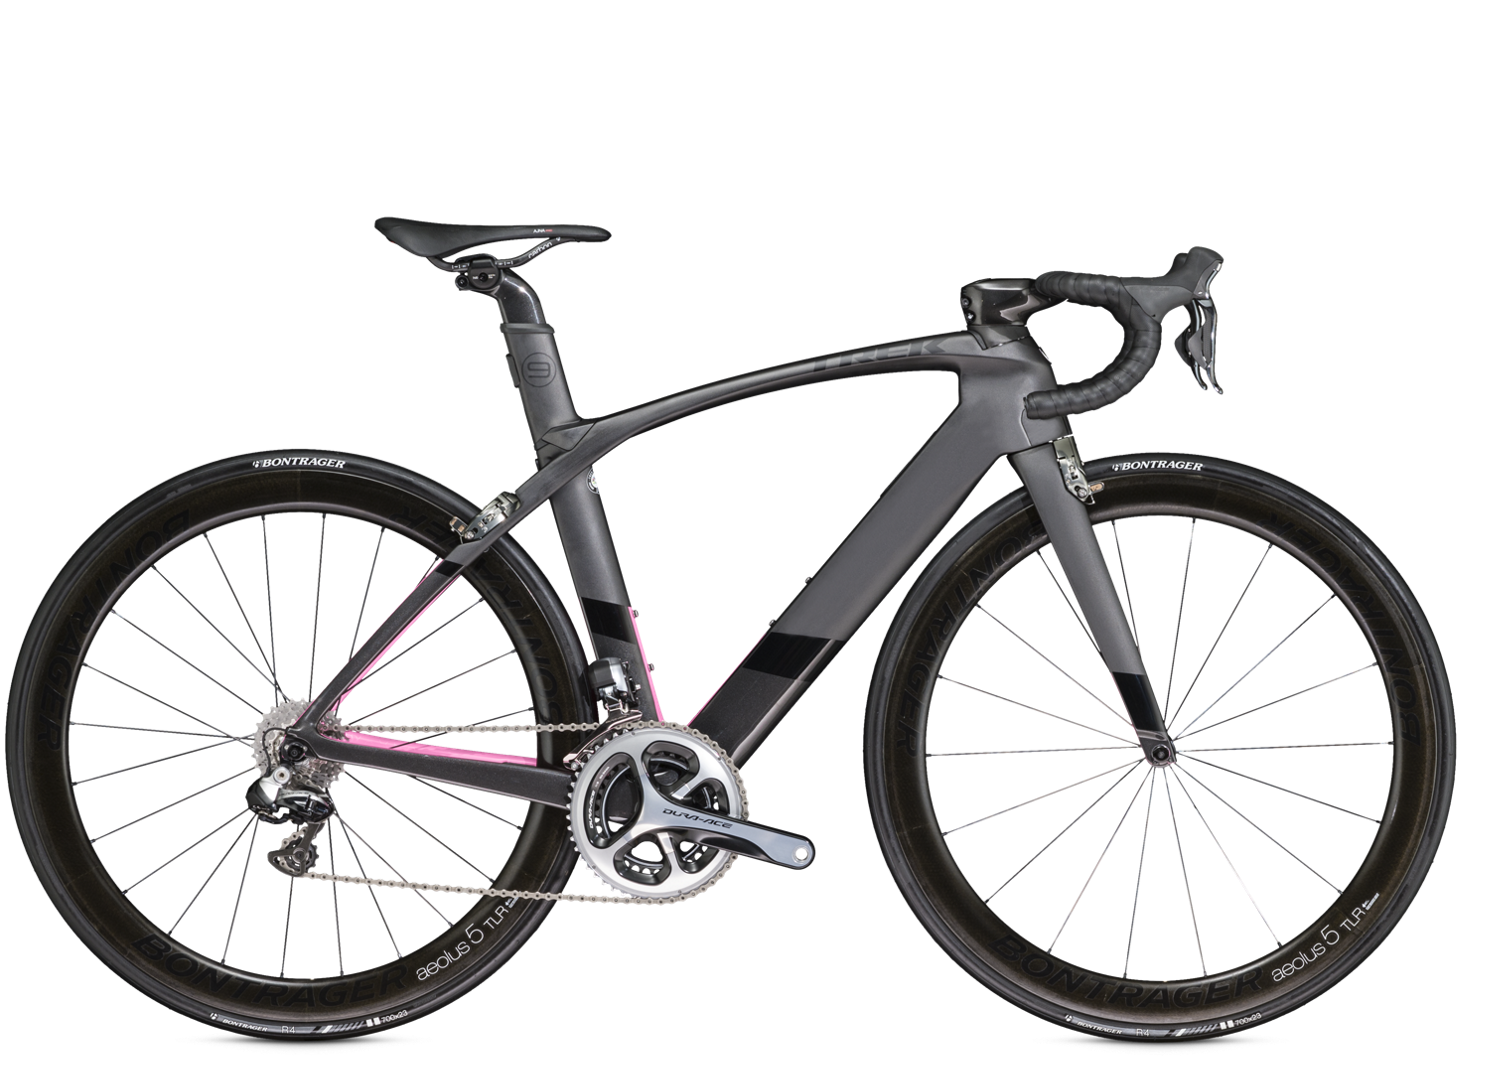 TREK MADONE 9.9 WOMAN'S